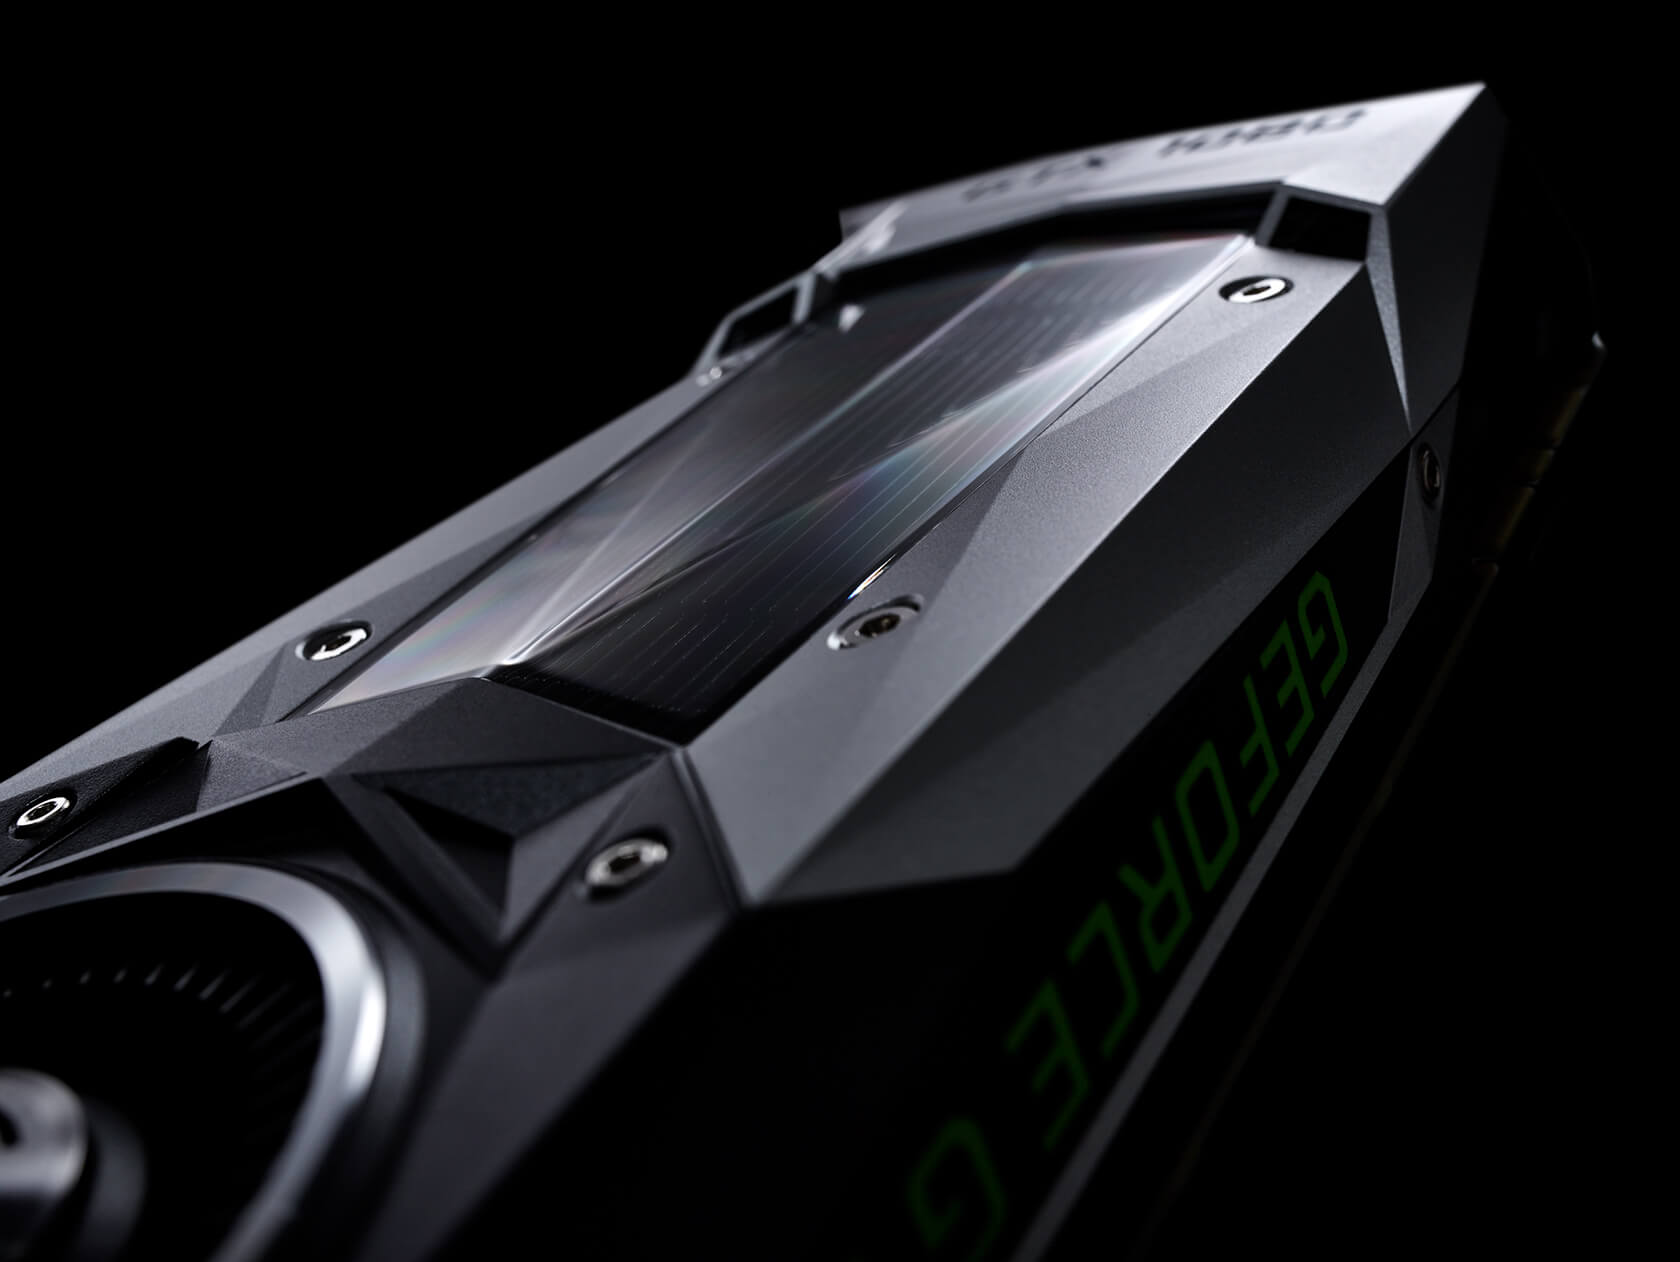 NVIDIA: confirms GeForce Gaming Celebration event